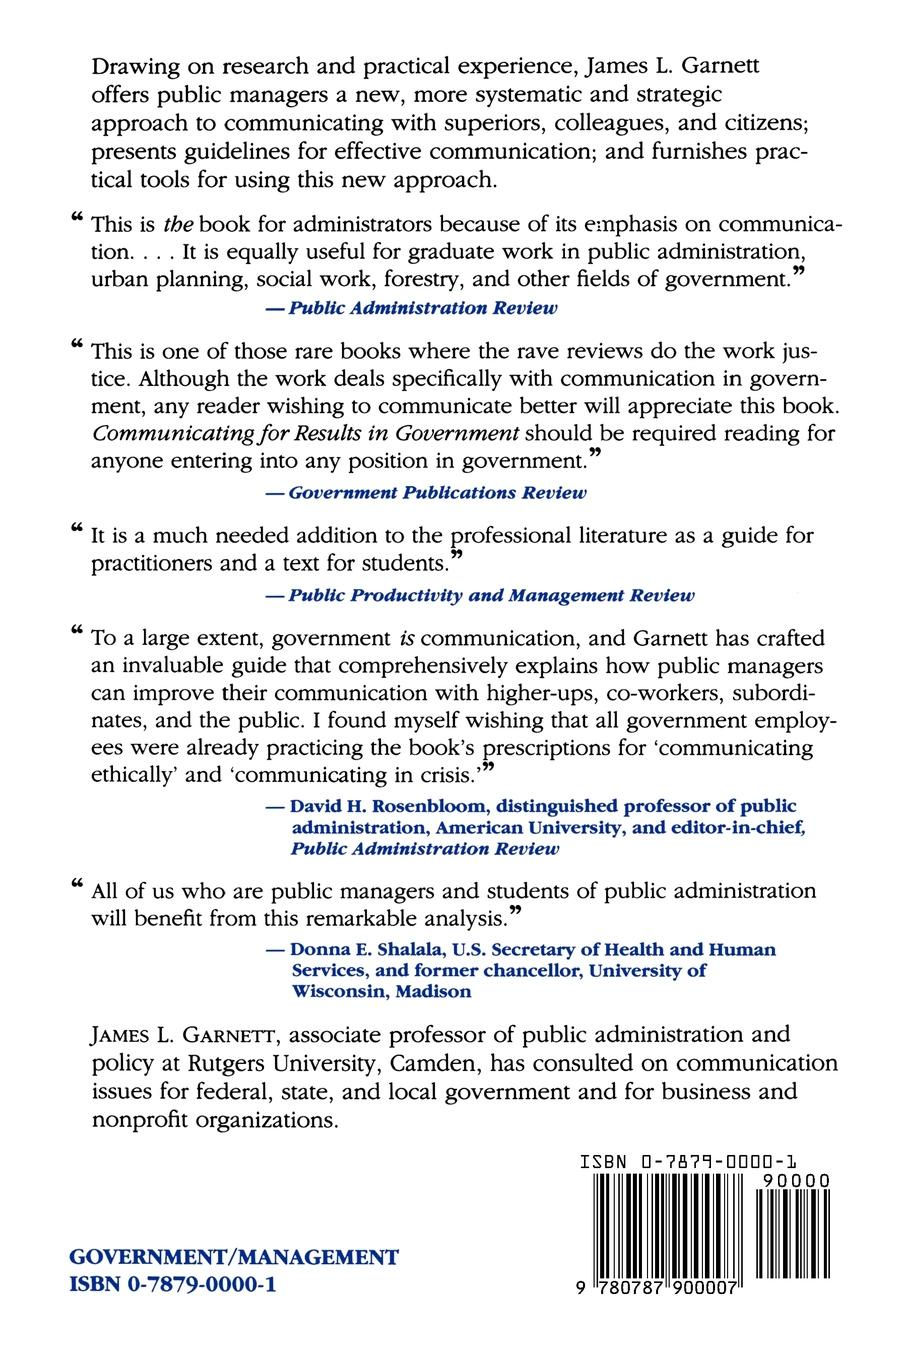 James L. Garnett Communicating for Results in Government. A Strategic Approach Public Managers